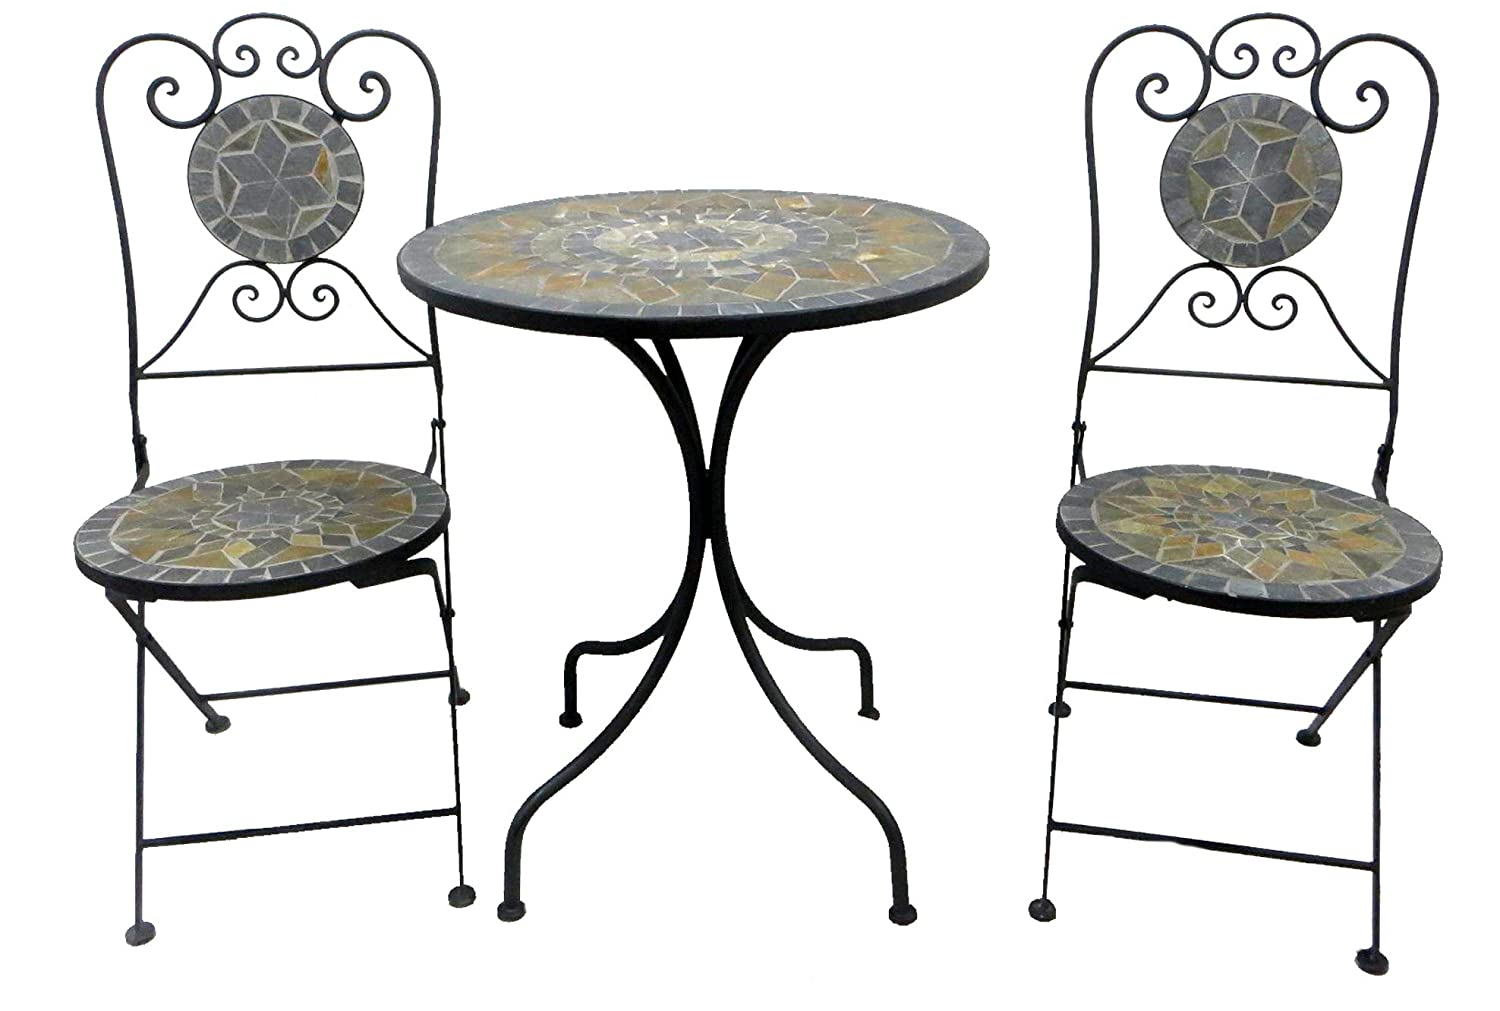 garten m bel eisen bistro set garten garnitur mosaik sitzgruppe eisen m bel 2 st hle 1 tisch. Black Bedroom Furniture Sets. Home Design Ideas